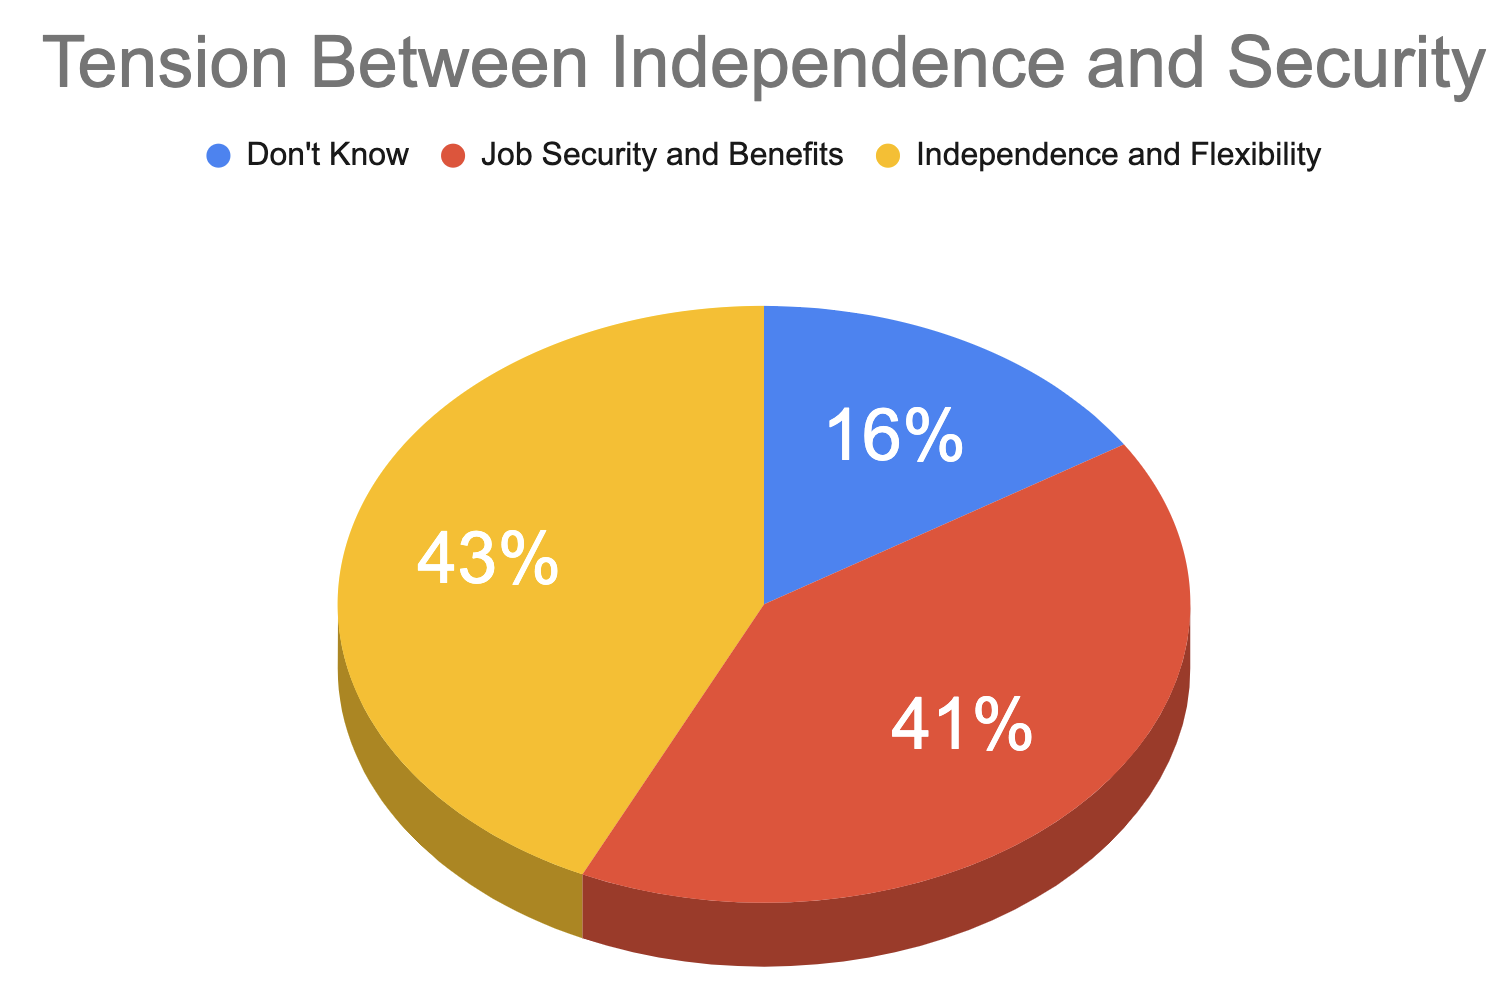 Pie chart illustrates the tension between independence and security. 43% of freelancers prefer independence and flexibility. 41% prefer job security and benefits. 16% don't know.